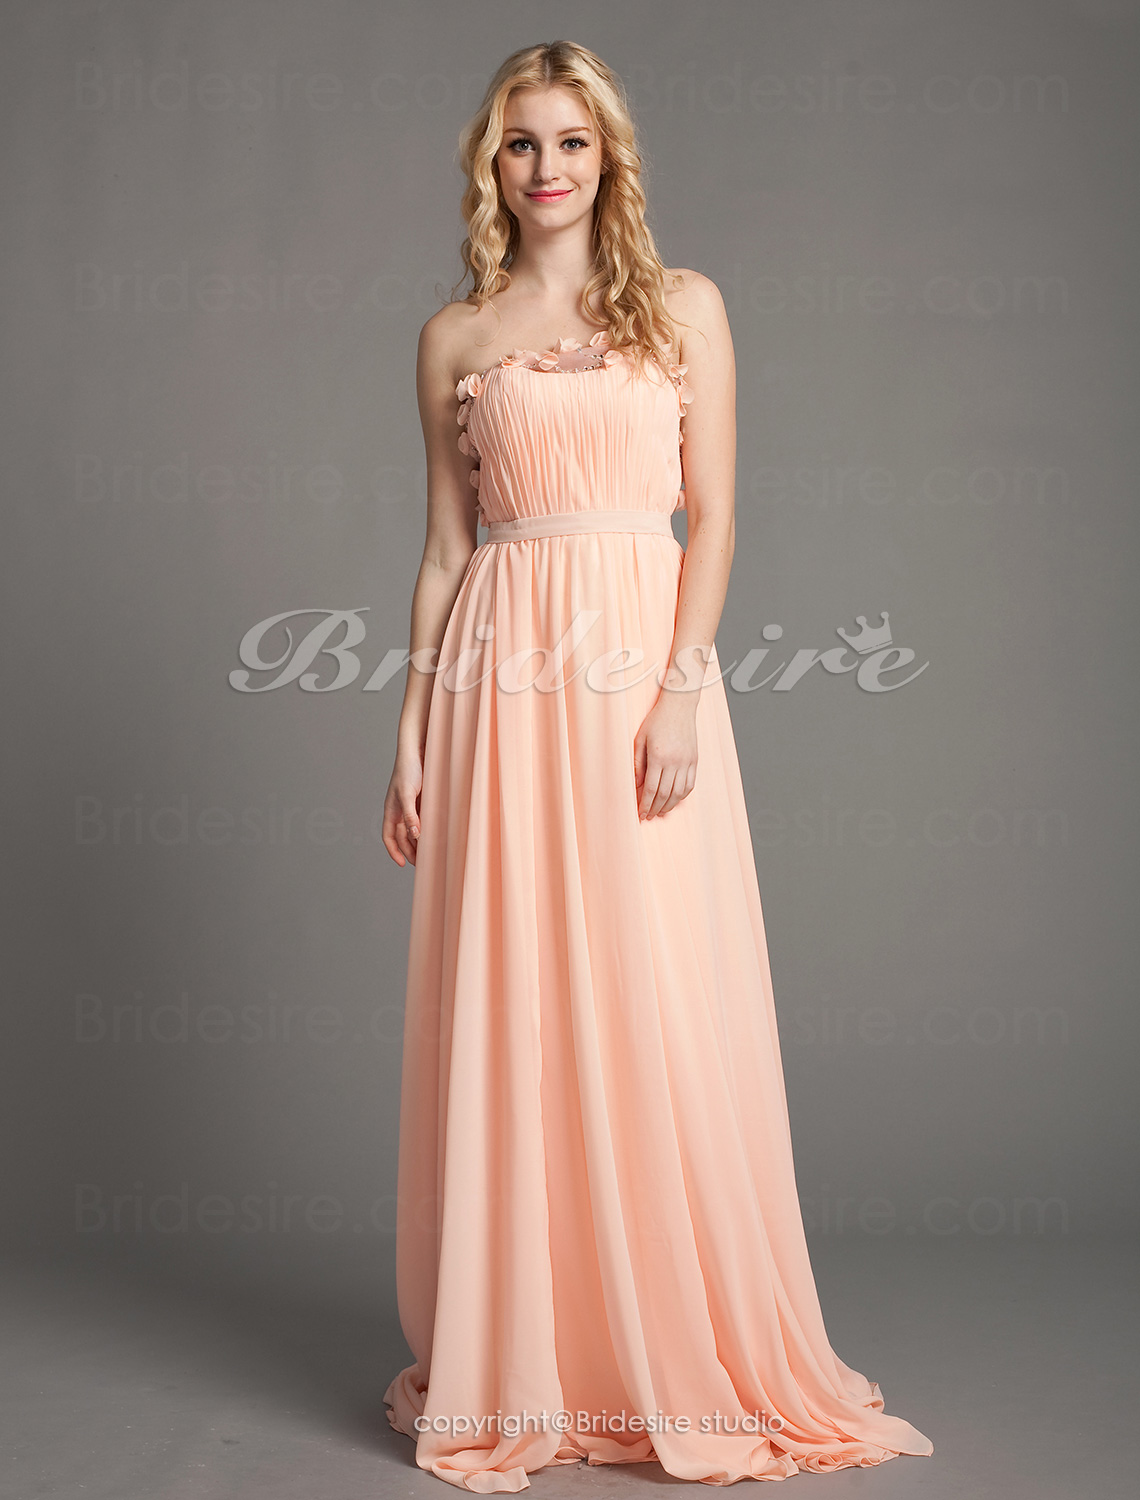 A-line Sweep Brush Train Strapless Luxurious Chiffon And Satin C